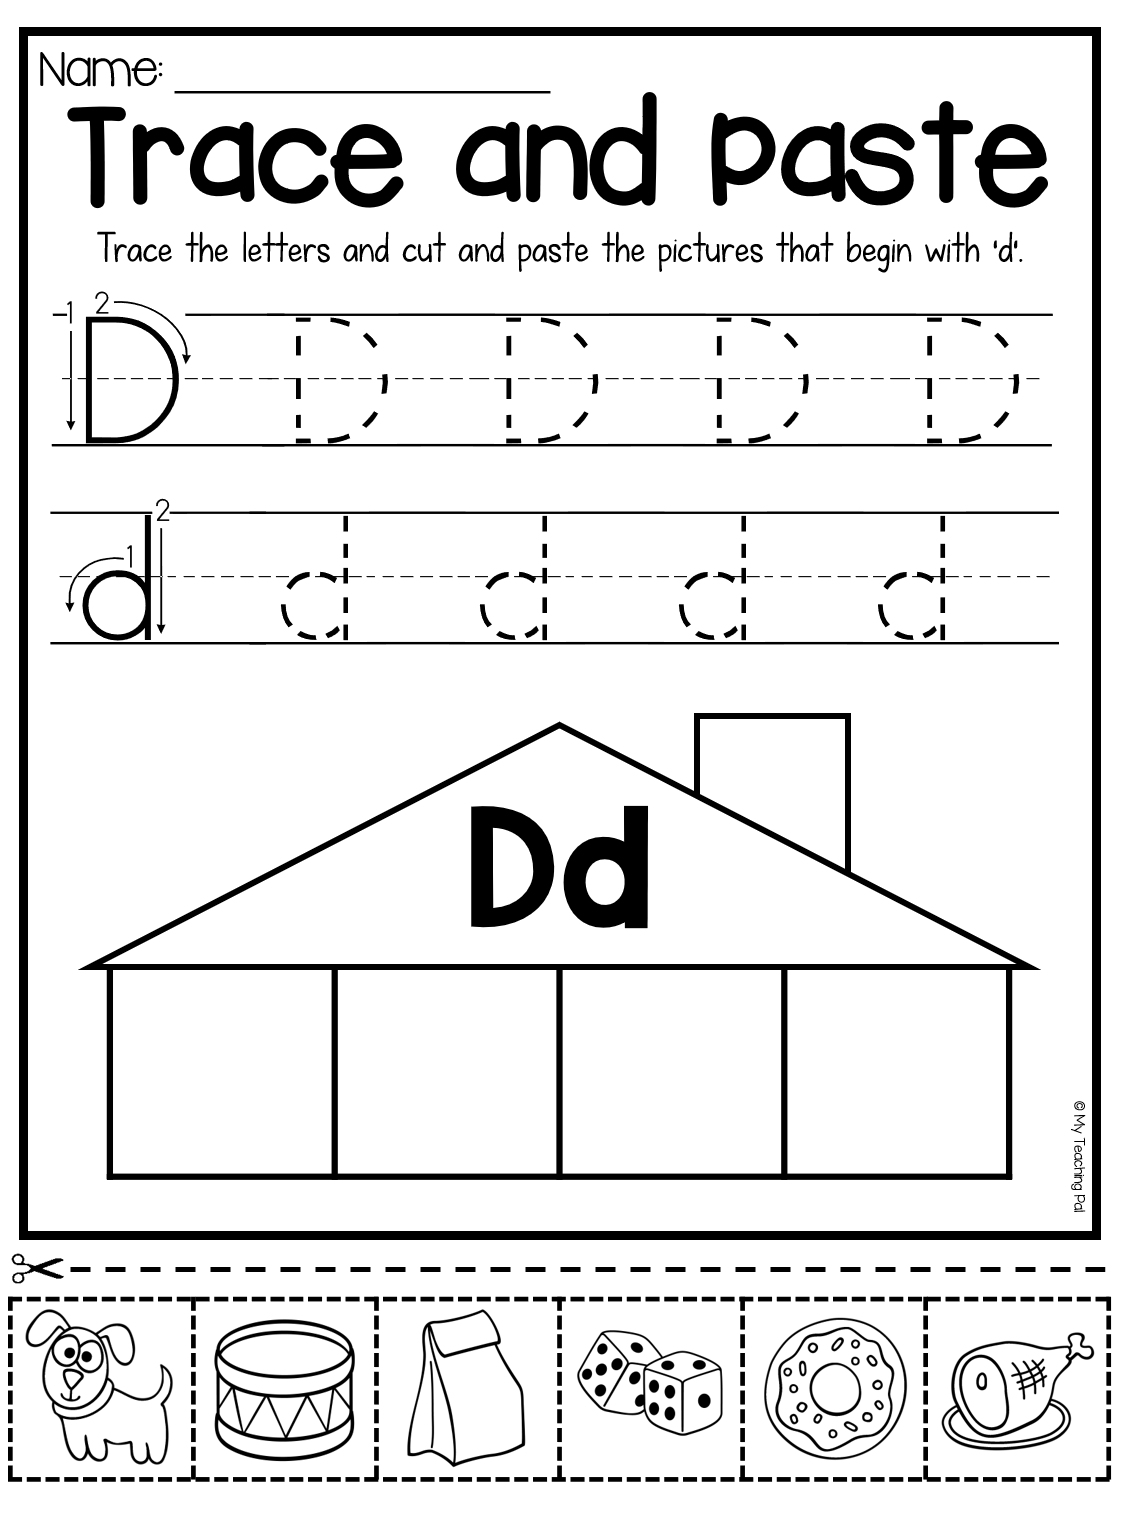 Beginning Sounds Worksheets - Trace and Paste